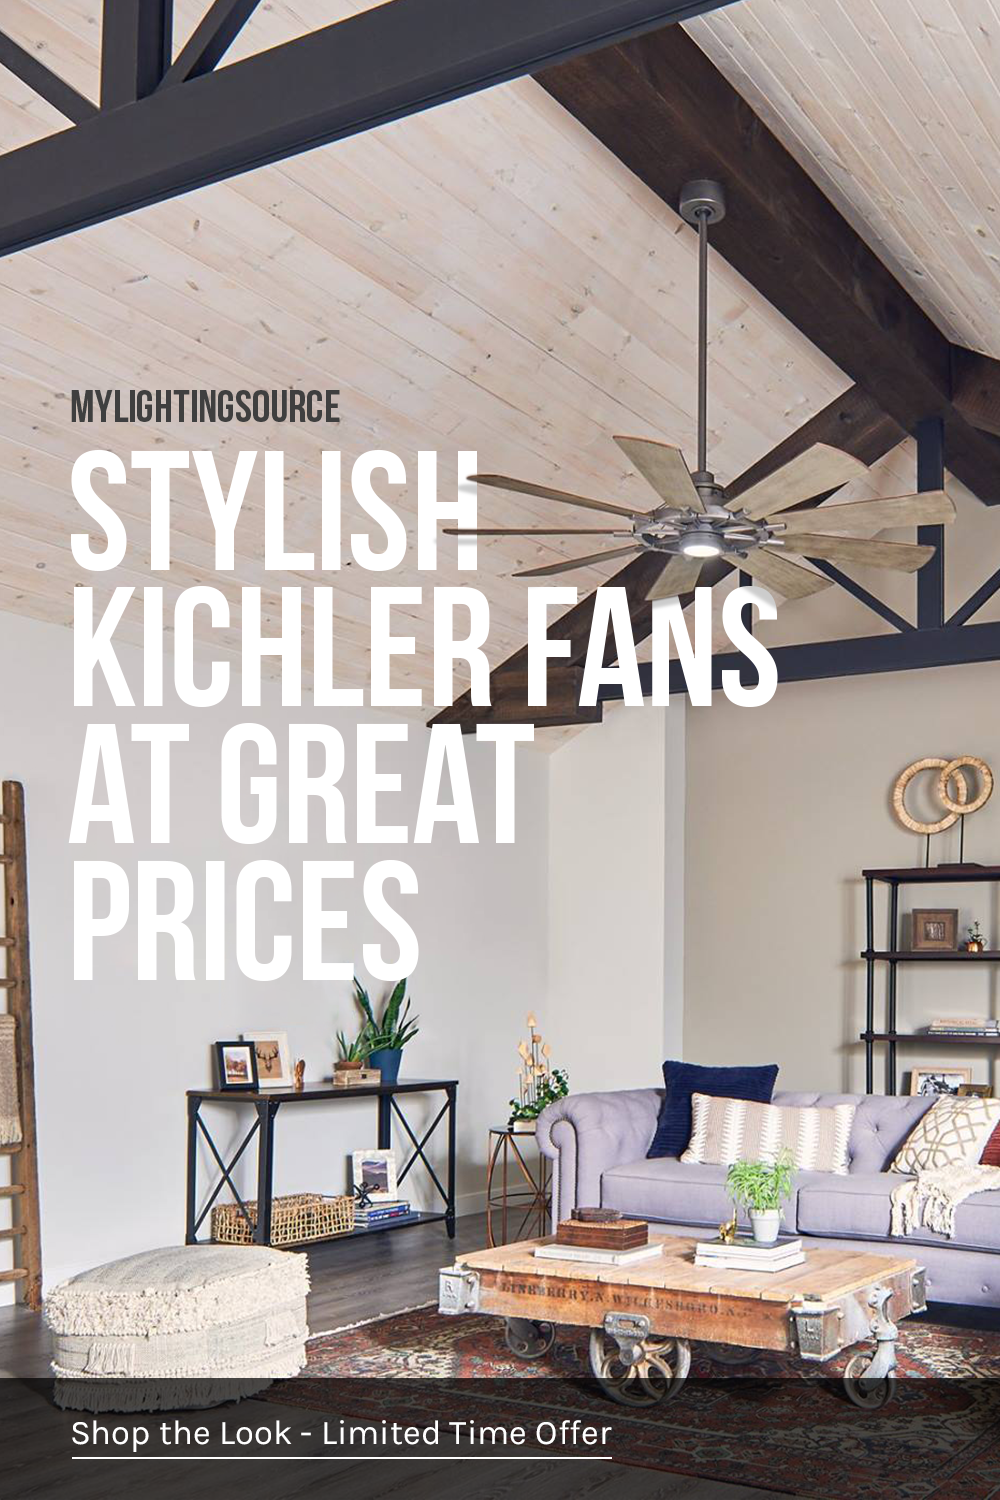 Summer Is Almost Upon Us And There S No Better Way To Cool Down Than With A New Ceiling Fa With Images Living Room Ceiling Fan Vaulted Ceiling Living Room Living Room